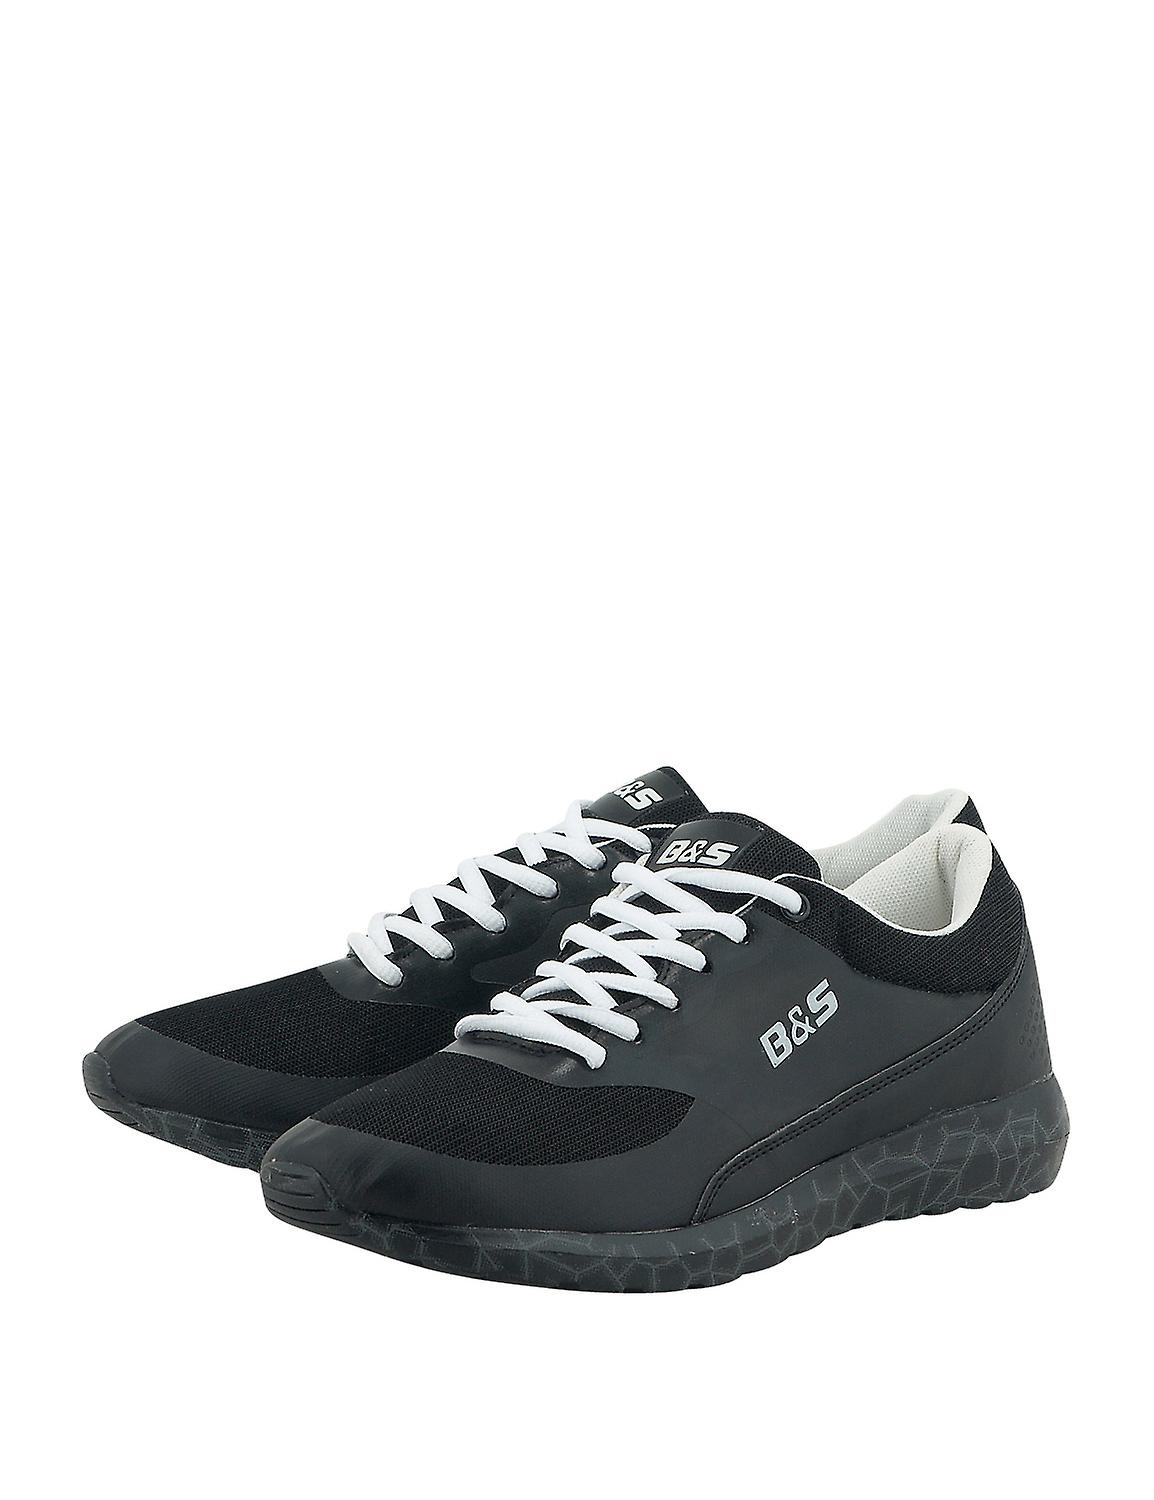 Bitter & Sweet Women's Low Cut Sneakers vJKdF